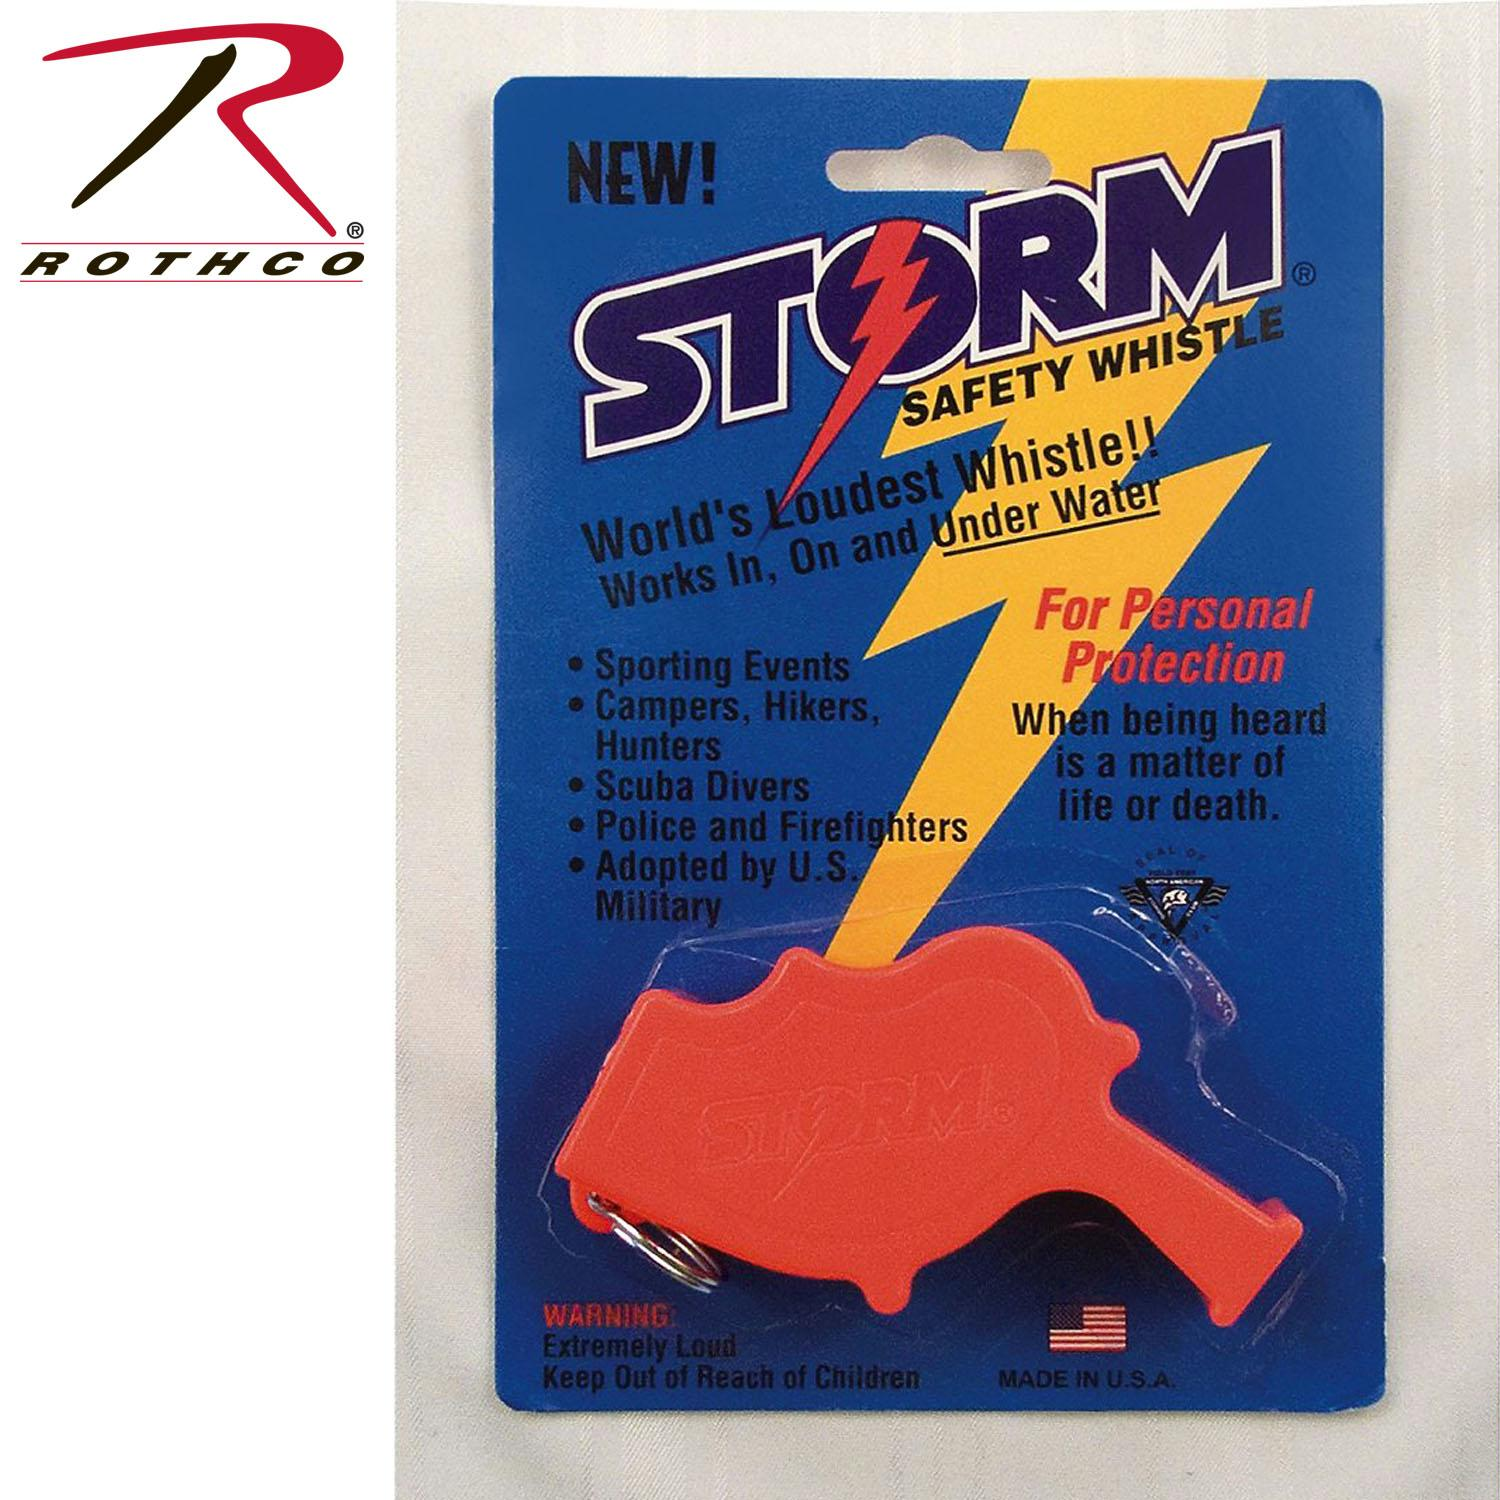 Rothco U.S. Navy storm All Weather Whistle - Orange